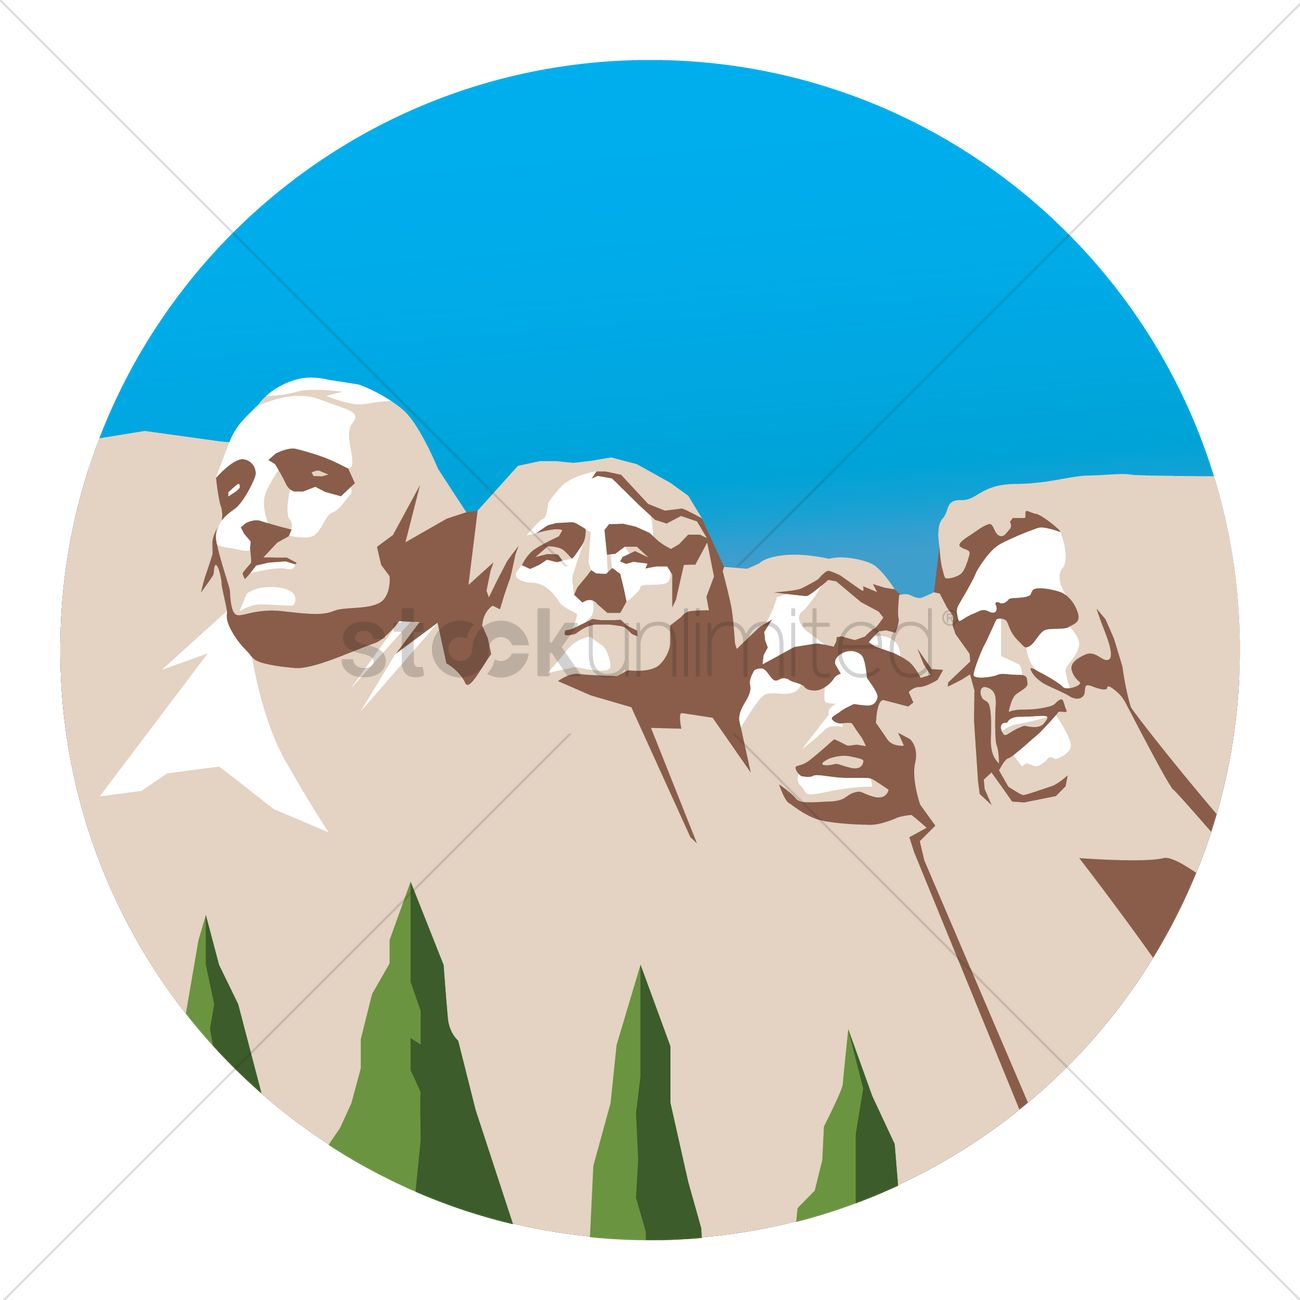 Mount rushmore Vector Image.